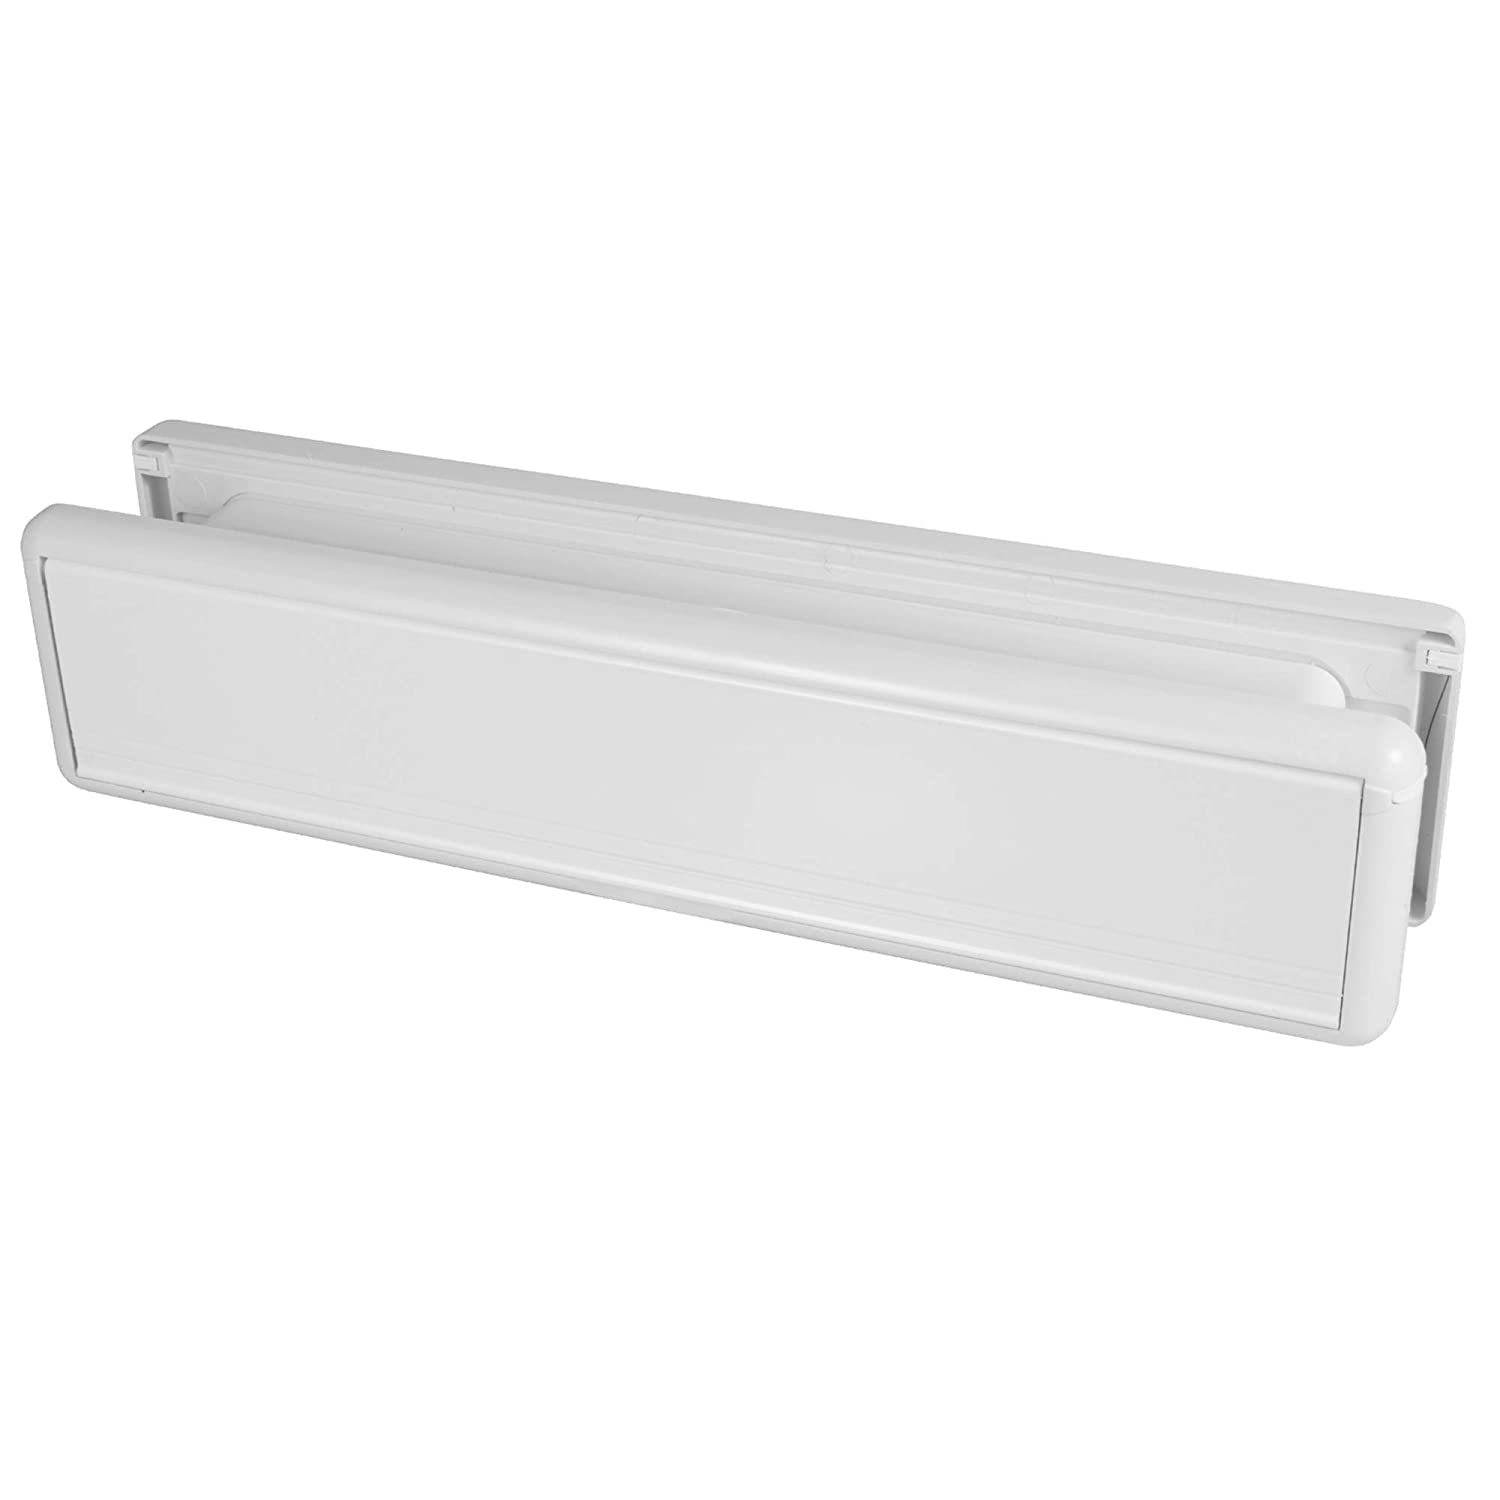 WELSEAL P5984-702A-BS 12 Inch UPVC Door Letterbox/Letter Plate Panel - White